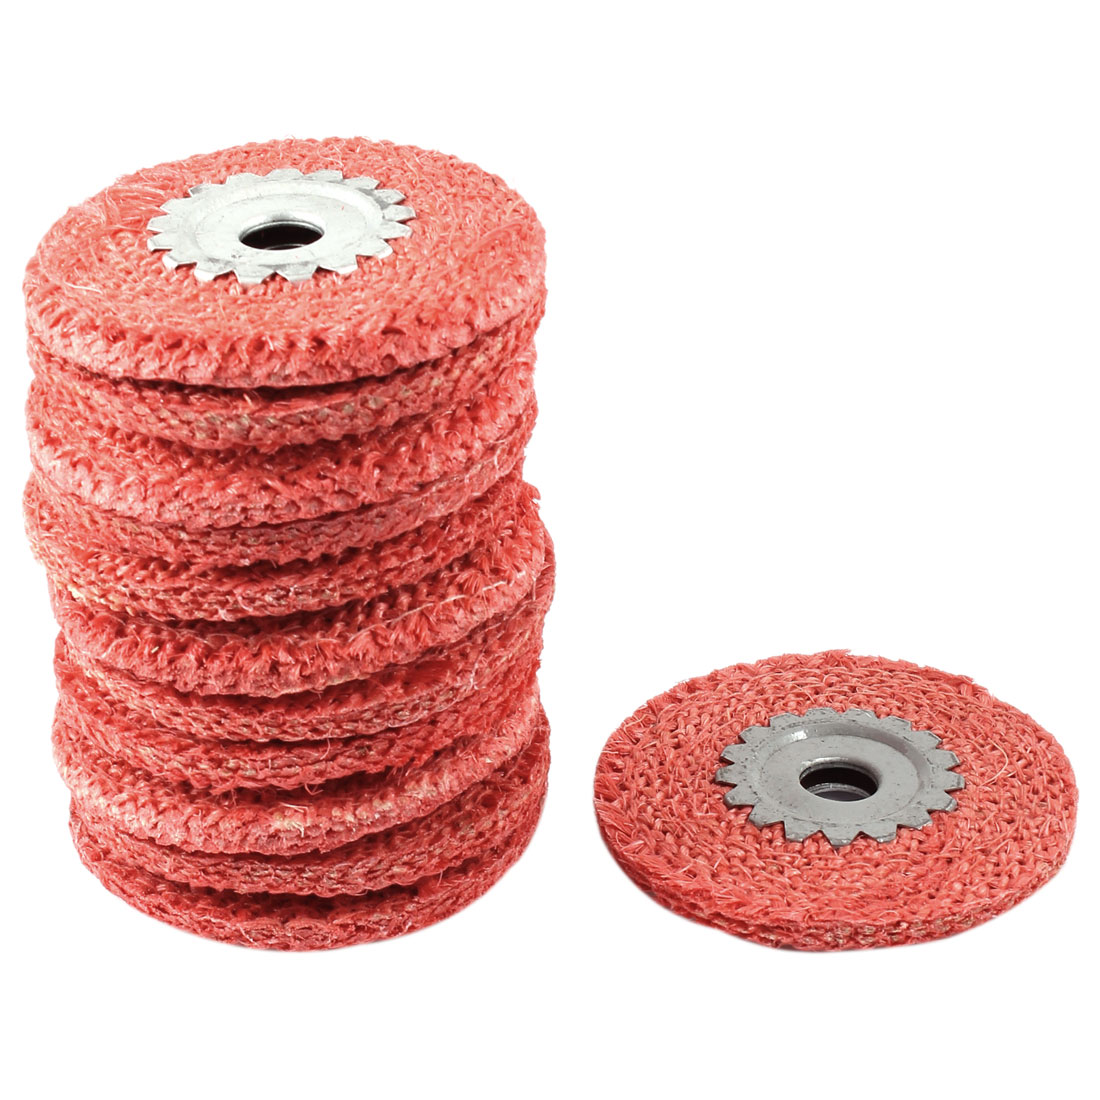 "12 Pcs 4"" Dia Red Rough Hemp Rope Abrasive Flap Disc Polishing Wheel"